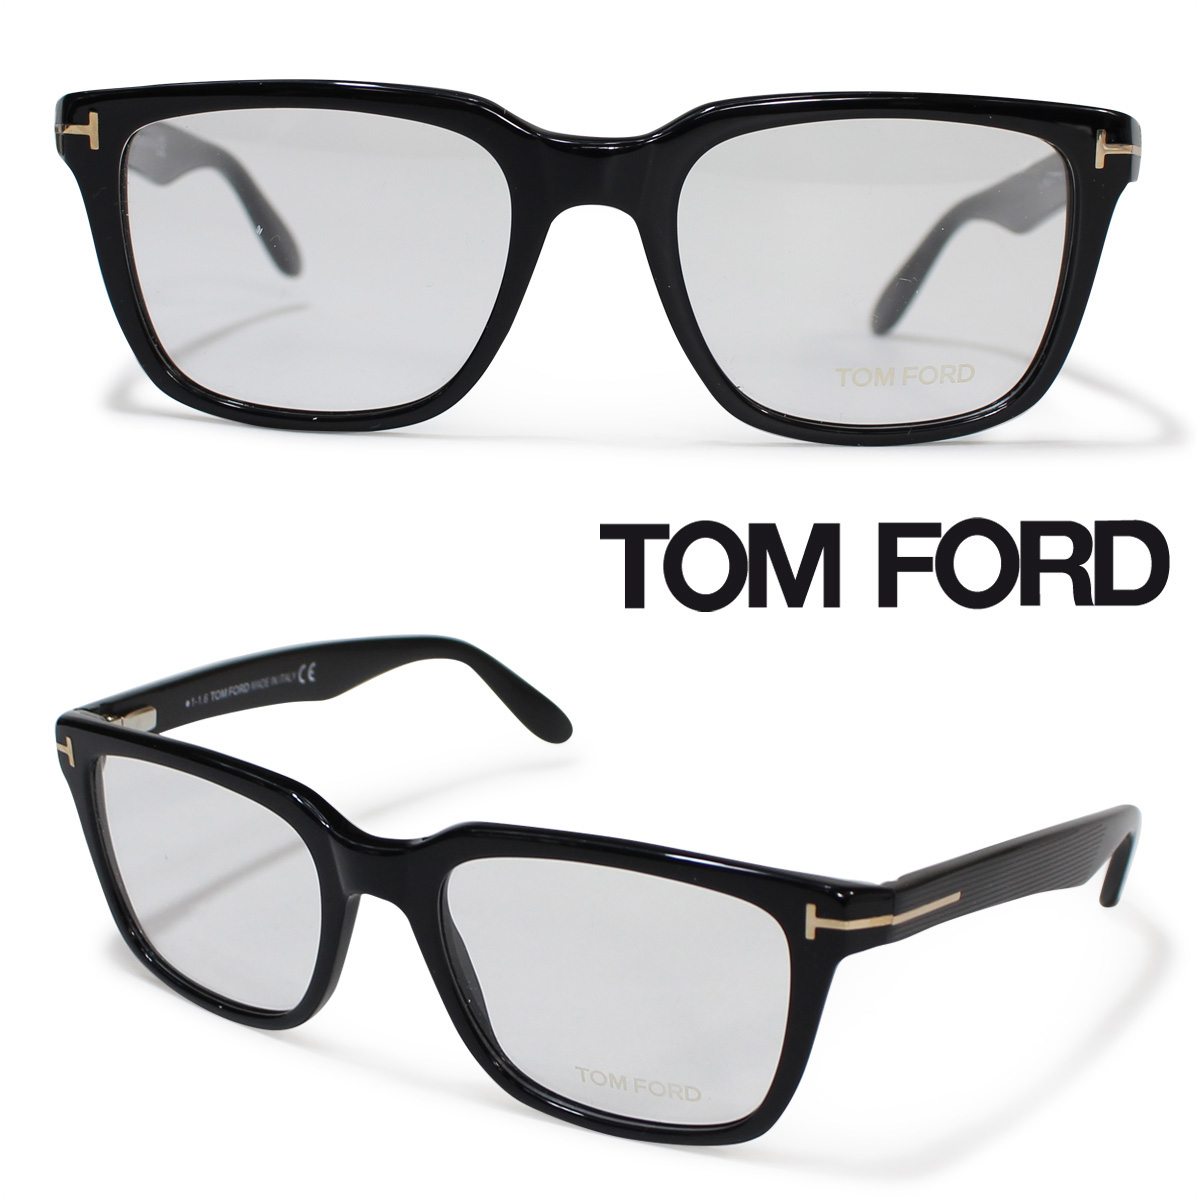 cda9d4df75d Allsports tom ford sunglasses mens womens tom ford eyewear acetate jpg  1200x1200 Tom ford eye wear